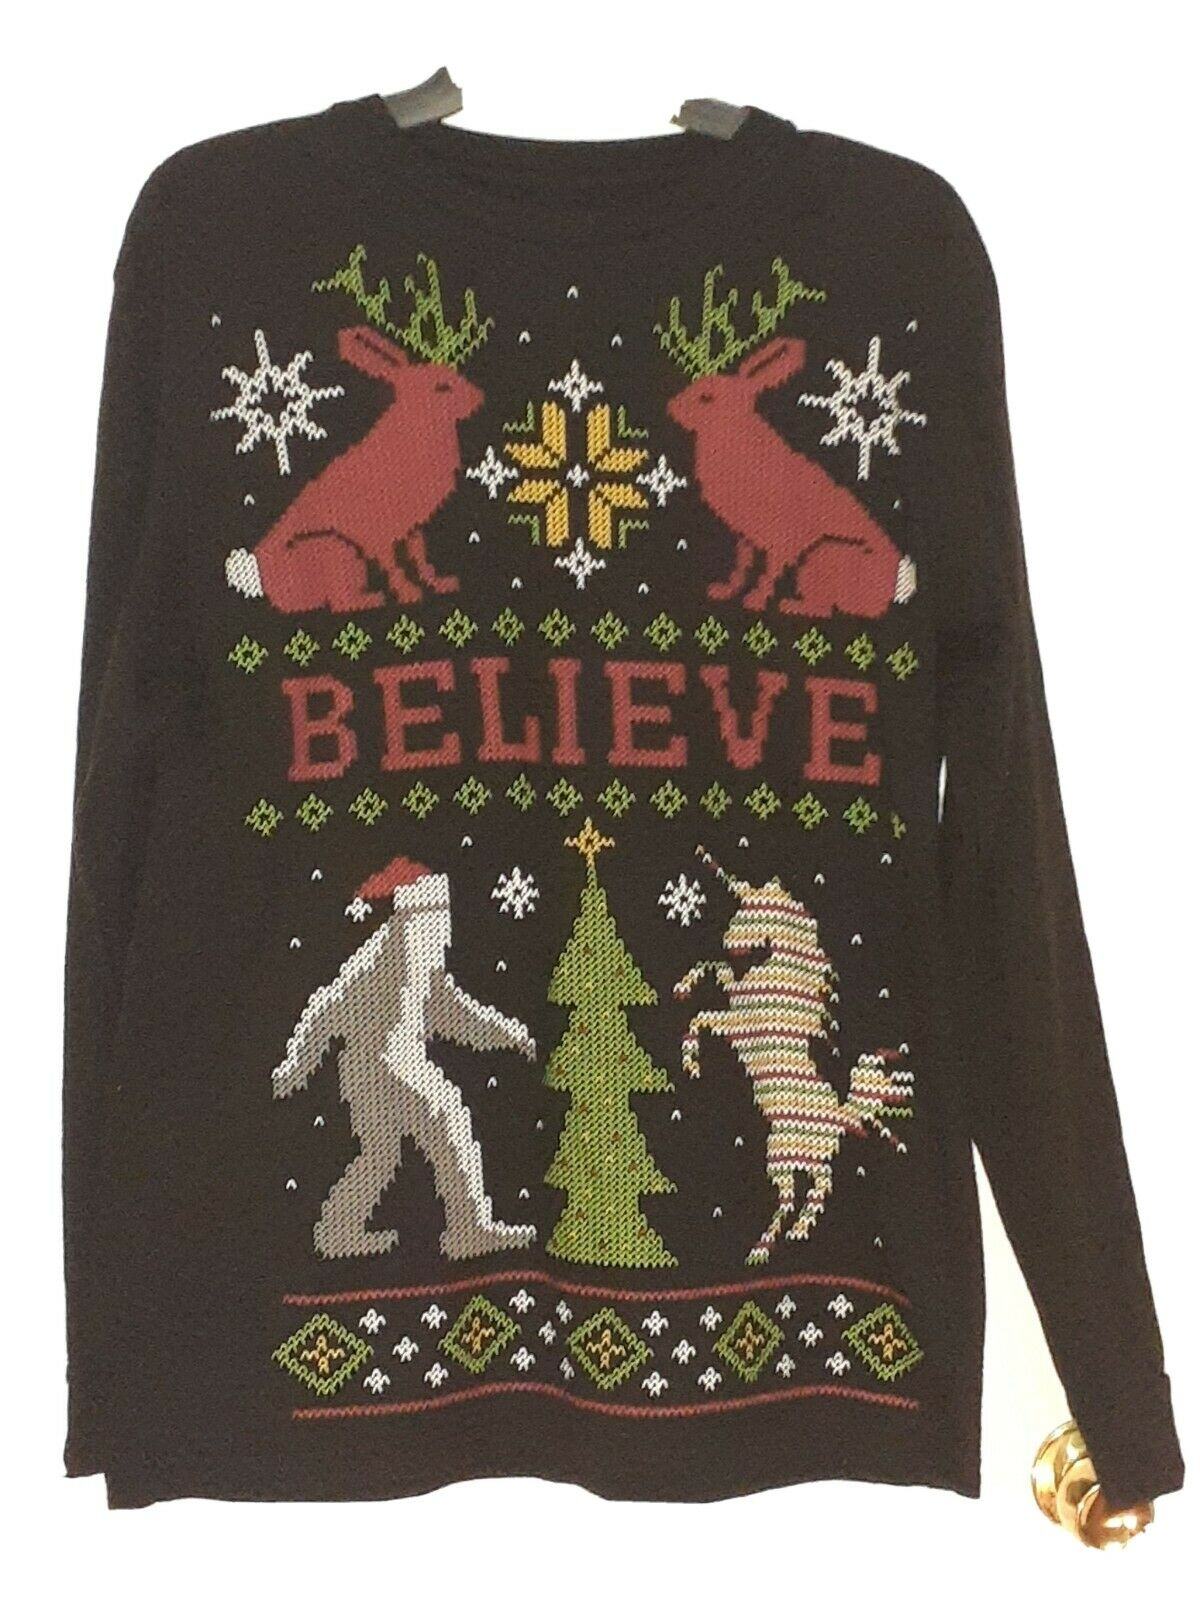 Dec. 25 Ugly Sweater